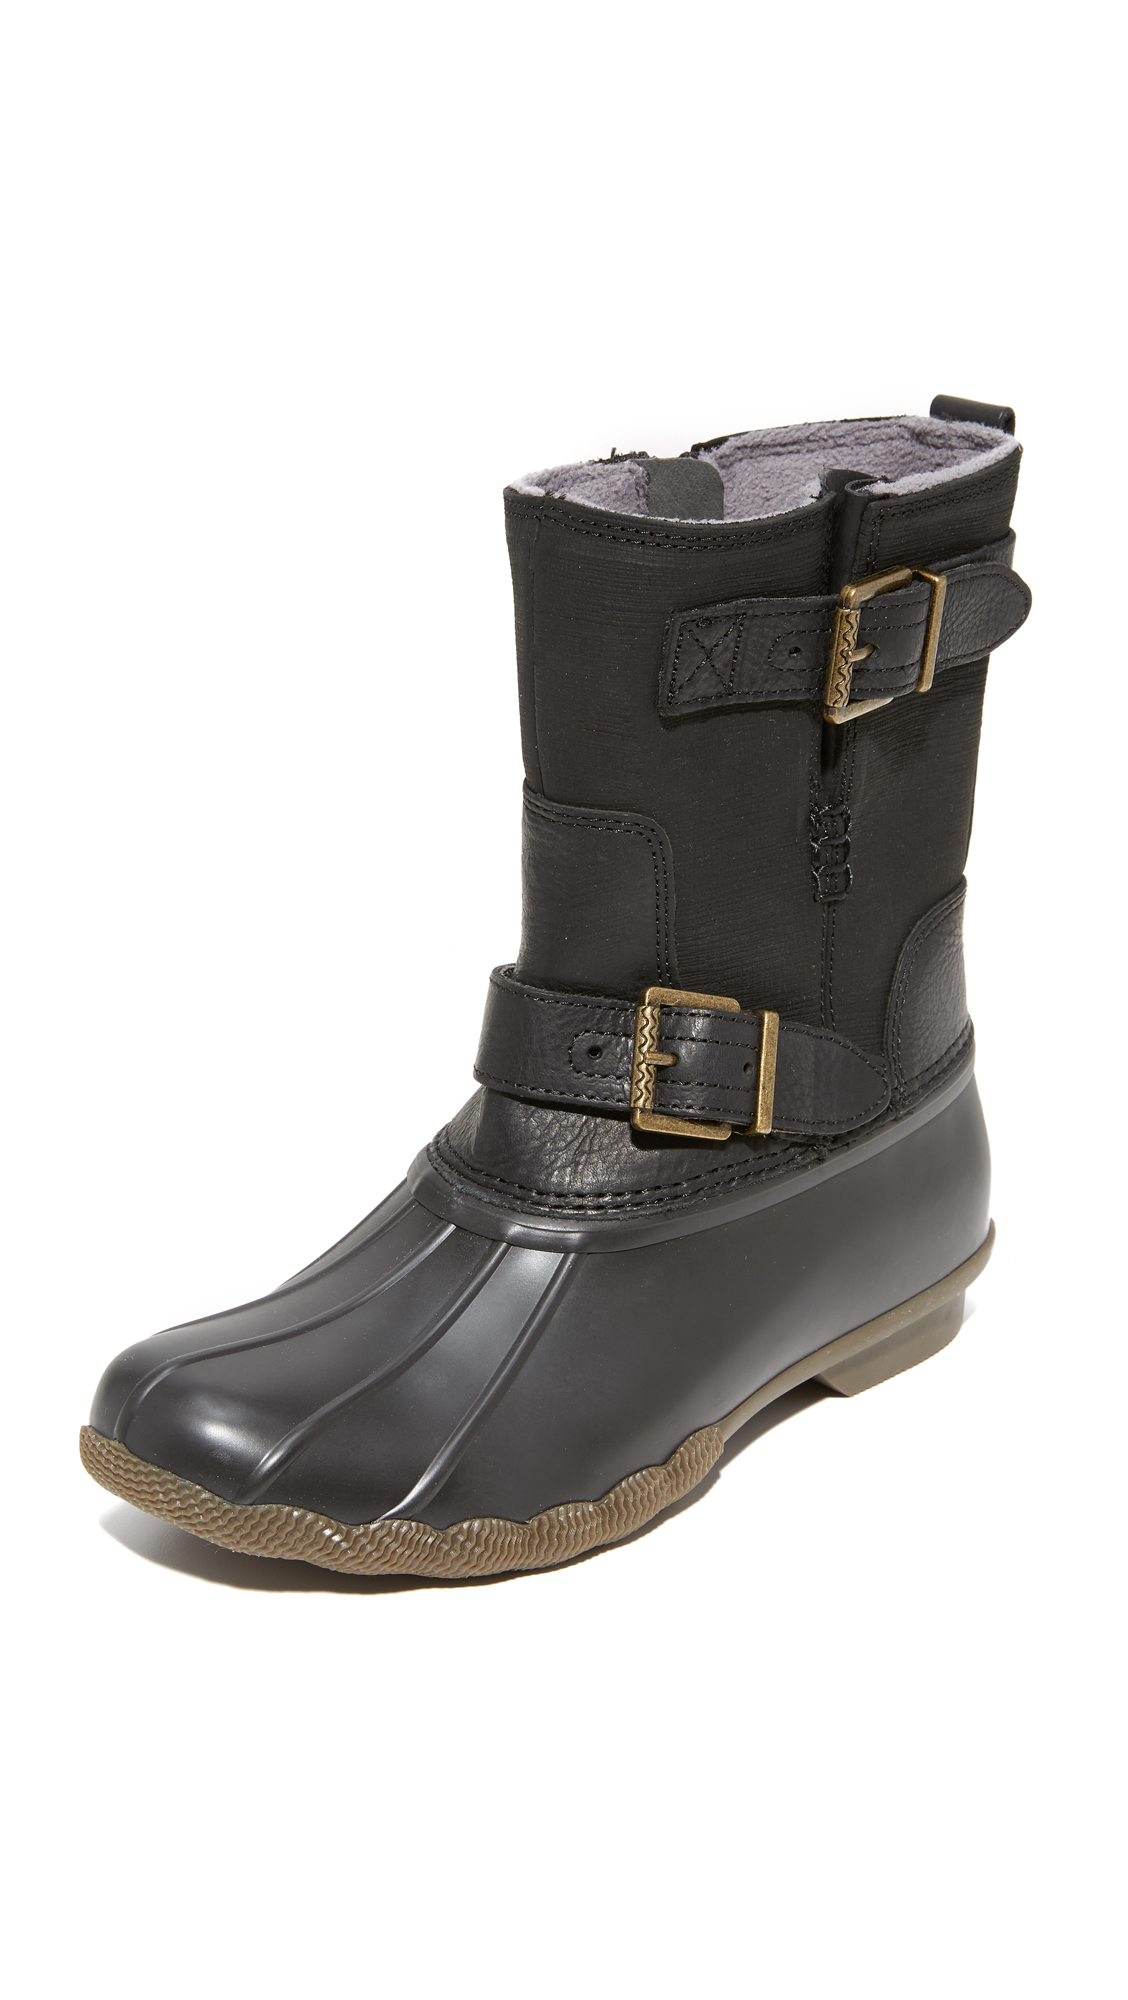 Sperry Saltwater Acadia Boots - Black